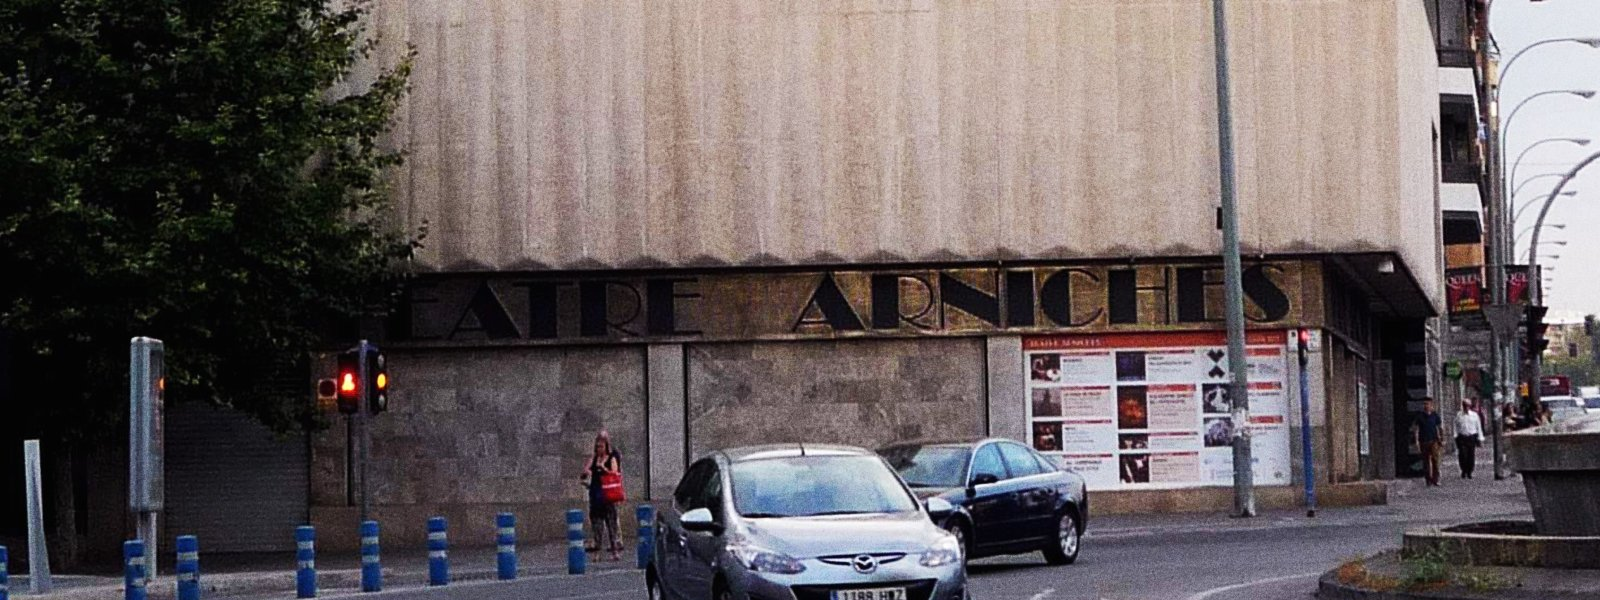 Teatre Arniches, venue for shows representation